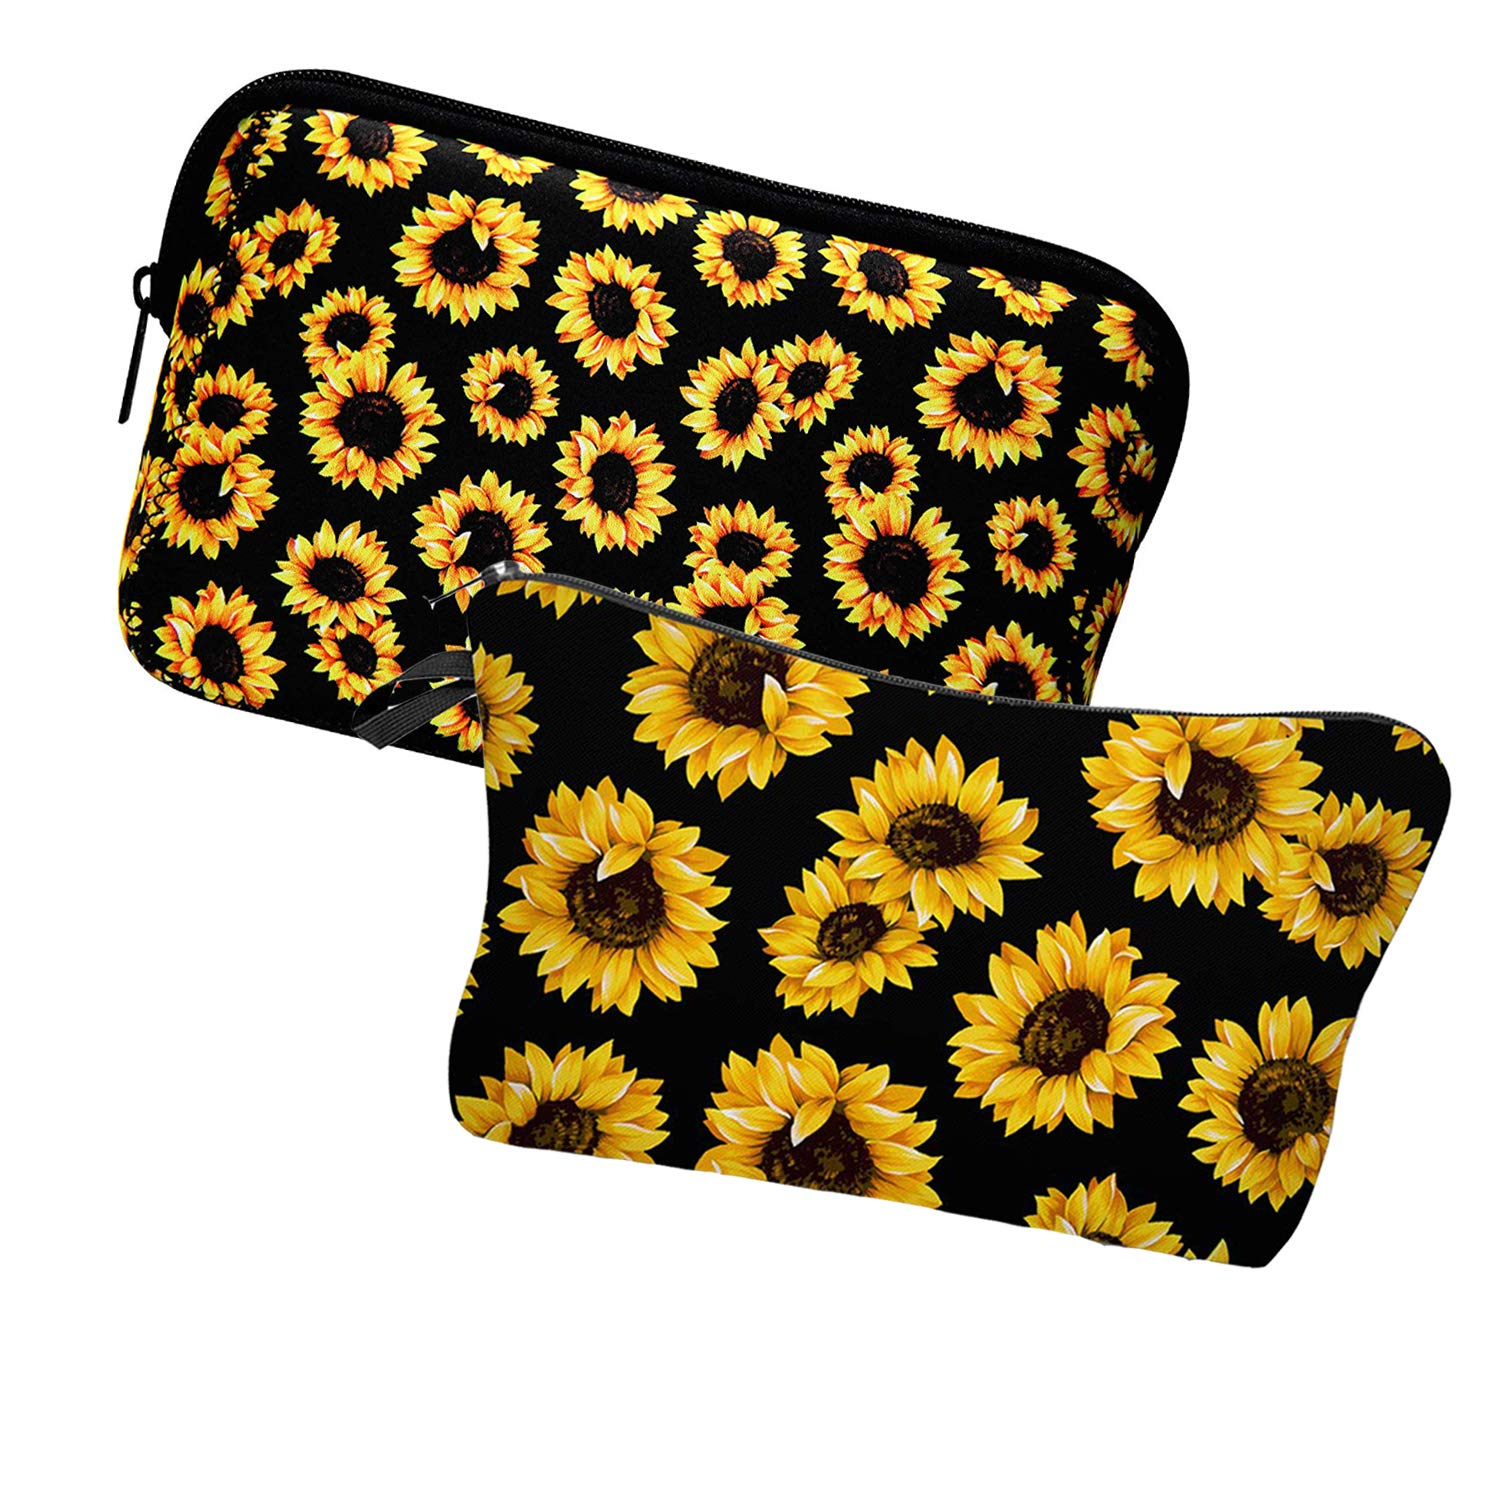 2 Pieces Sunflower Cosmetic Bags for Women,Waterproof, Soft, Zipper Toiletries Makeup bag Pouch Travel Bags,Adorable Roomy Makeup Bags Accessories Organizer Gifts